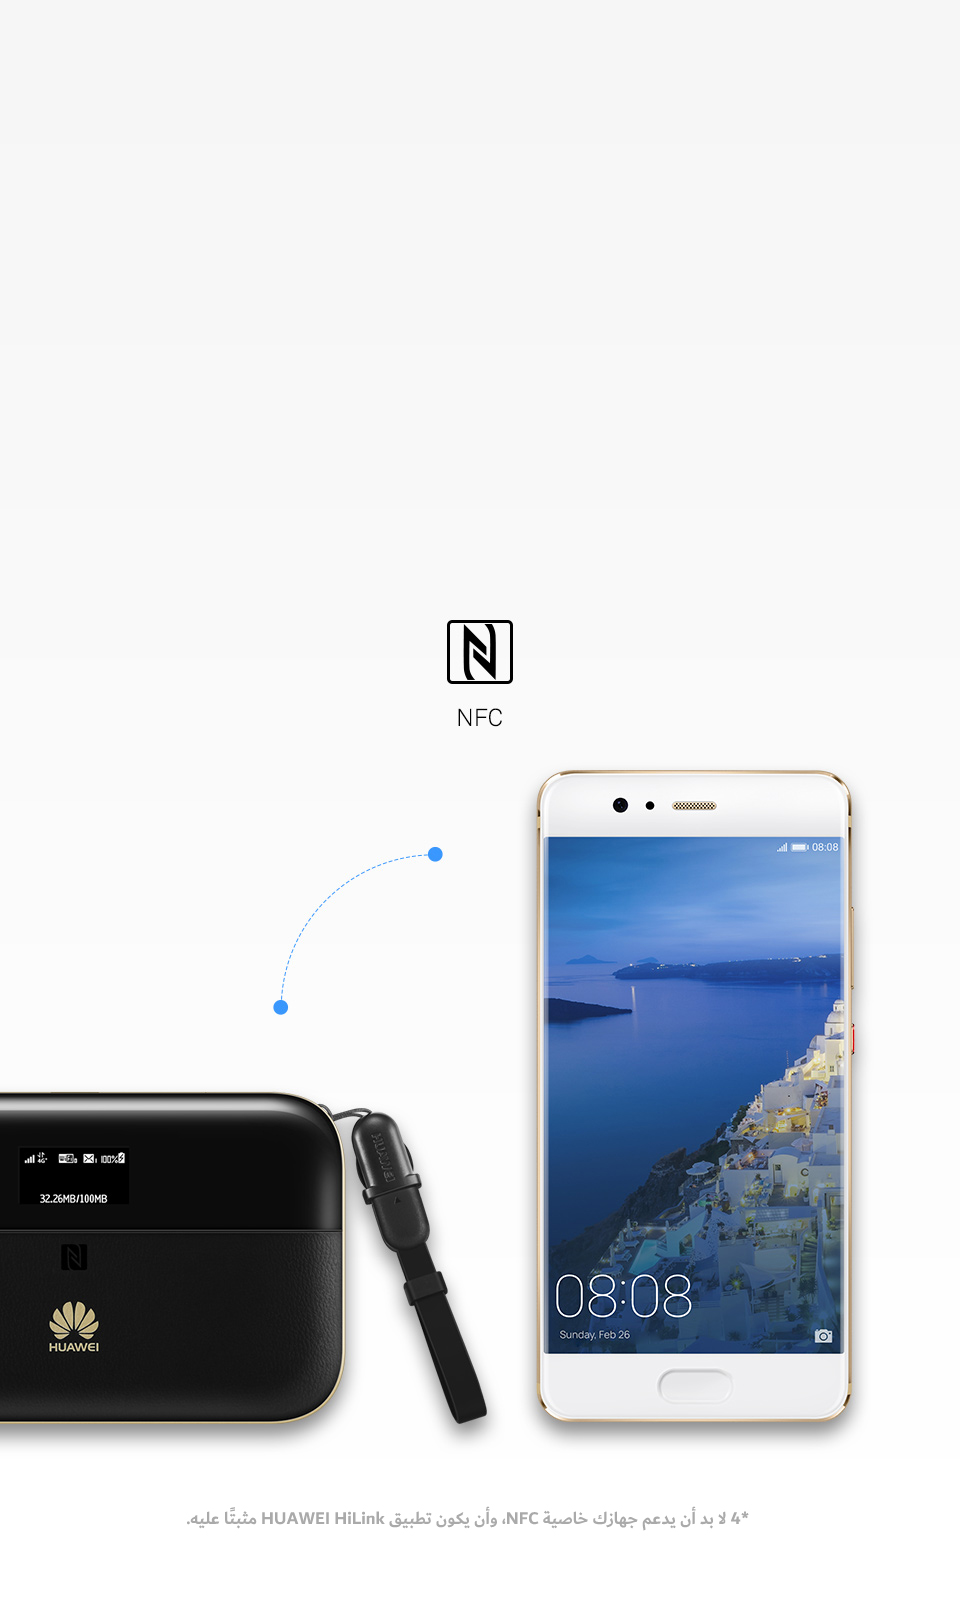 NFC-enabled Wi-Fi connection in just one touch